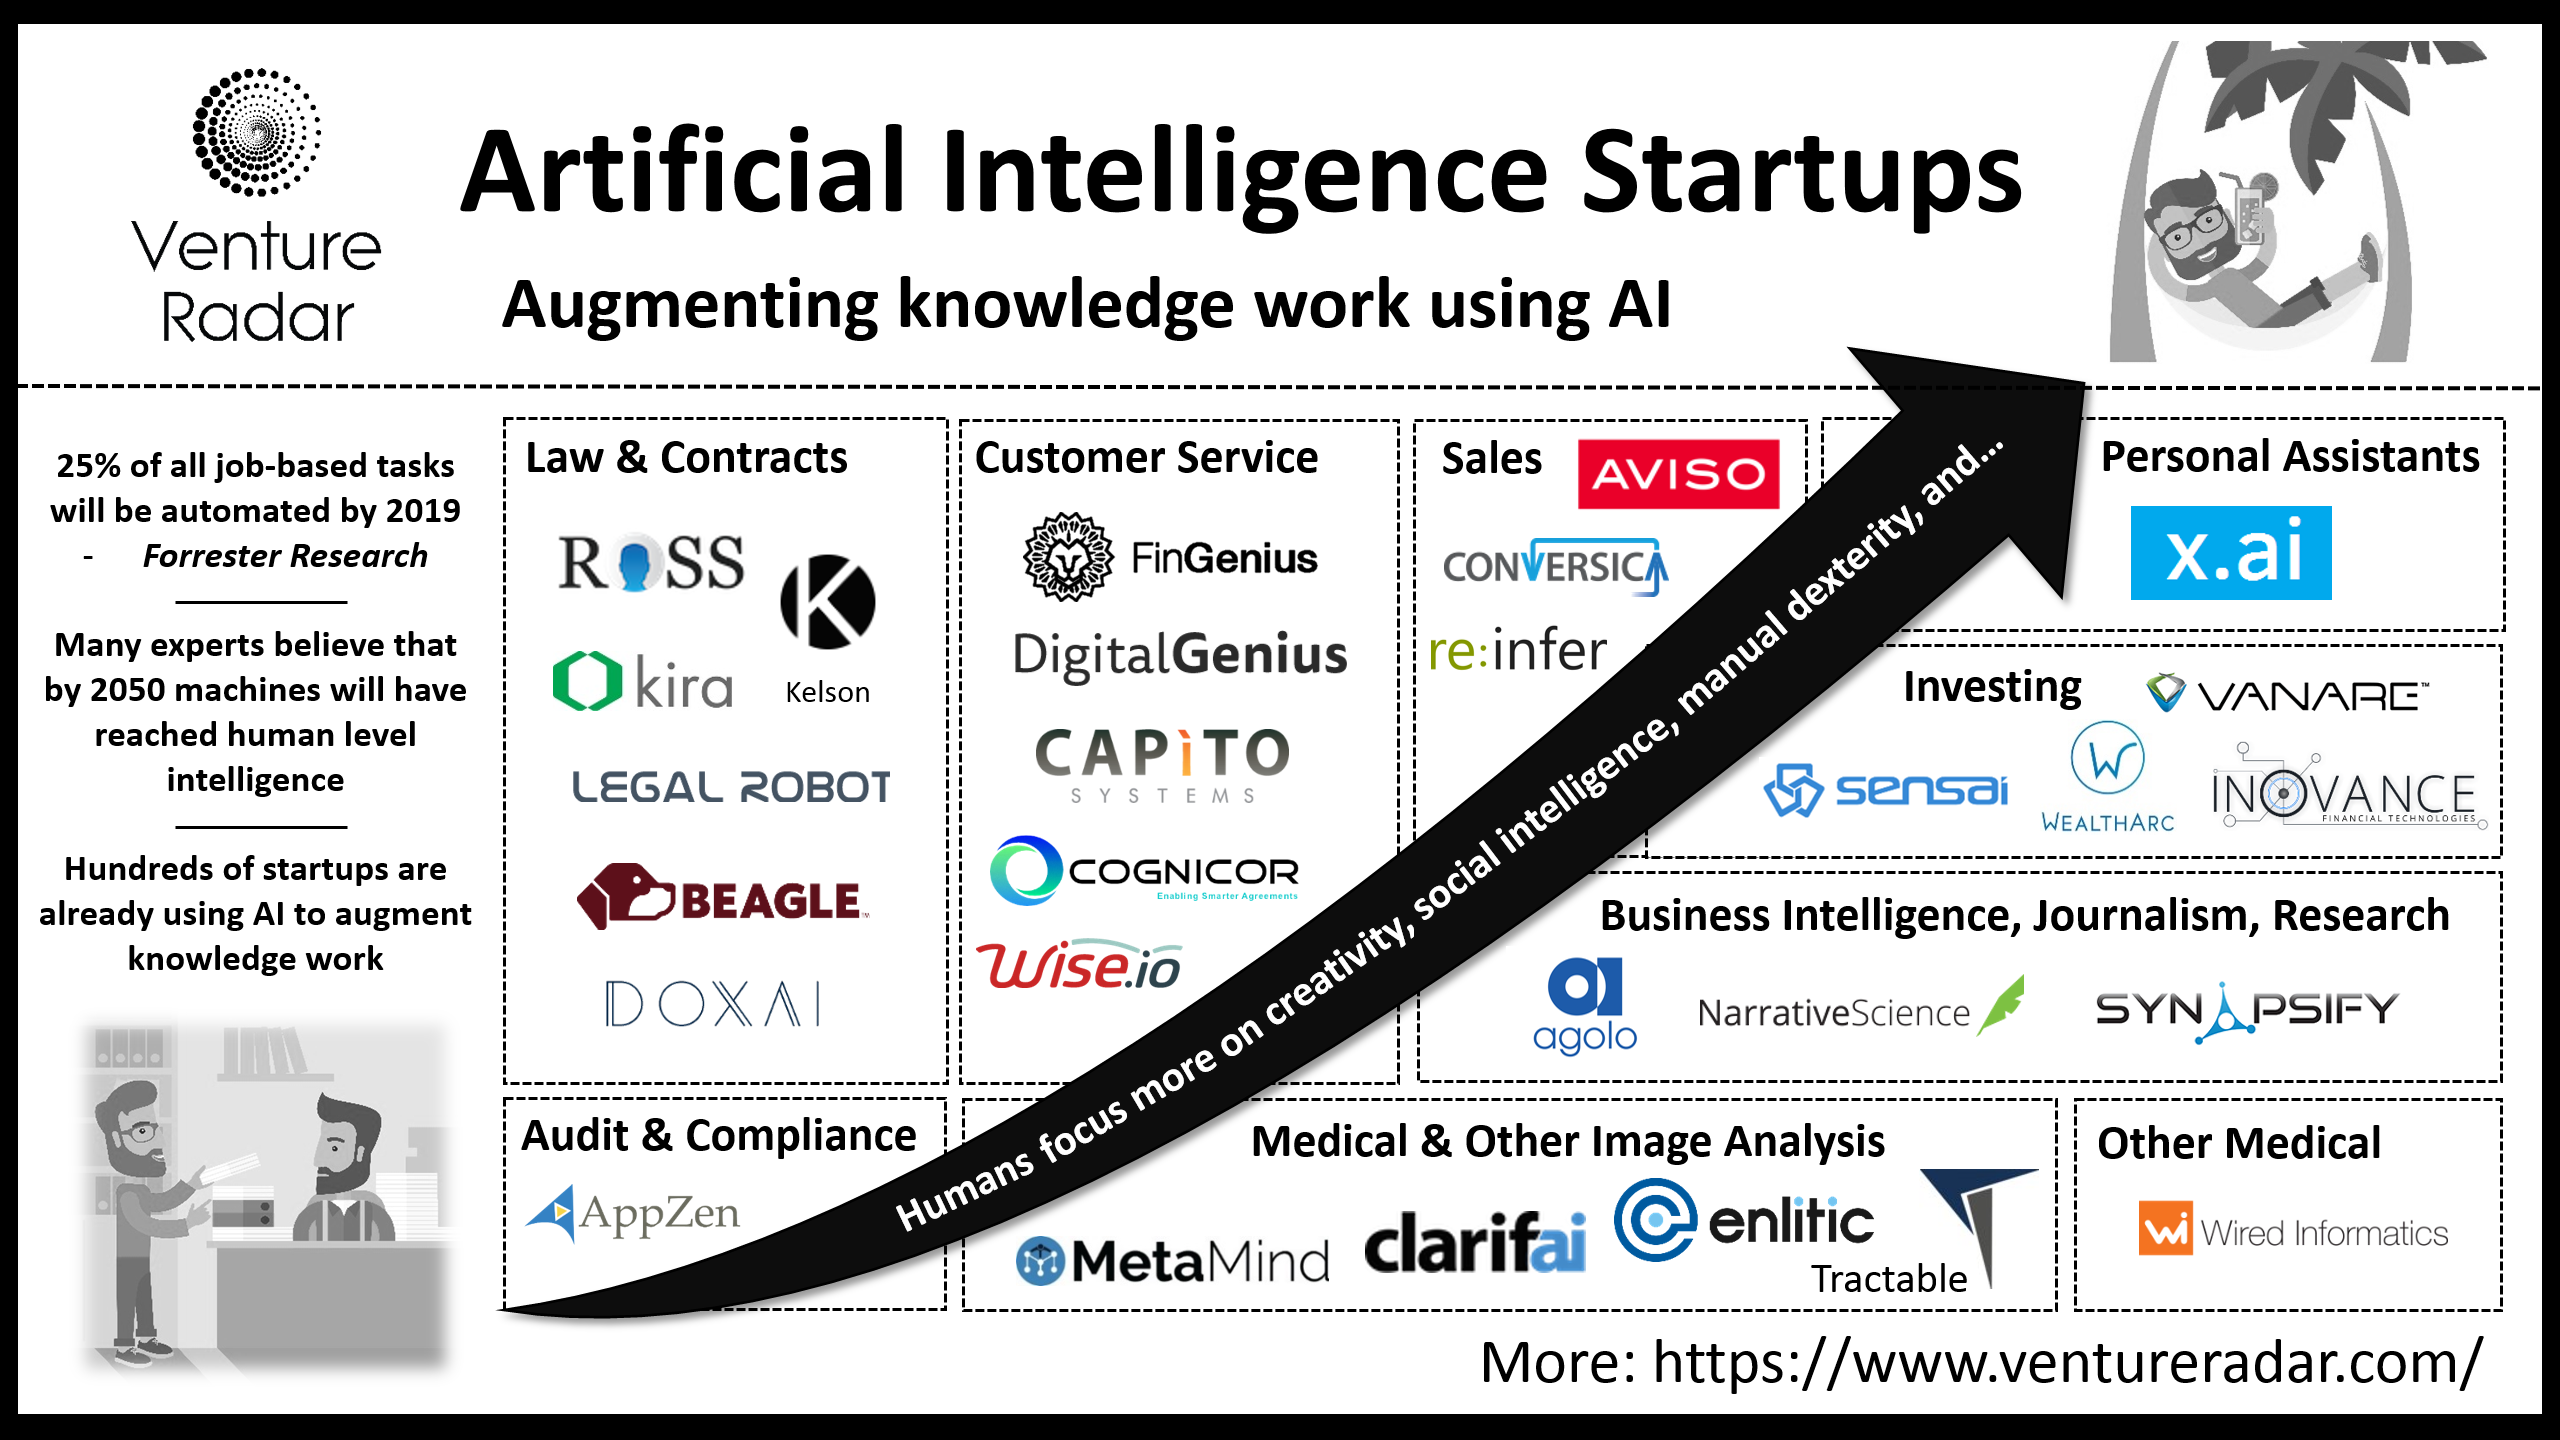 18 Deep Learning Startups You Should Know Ventureradar